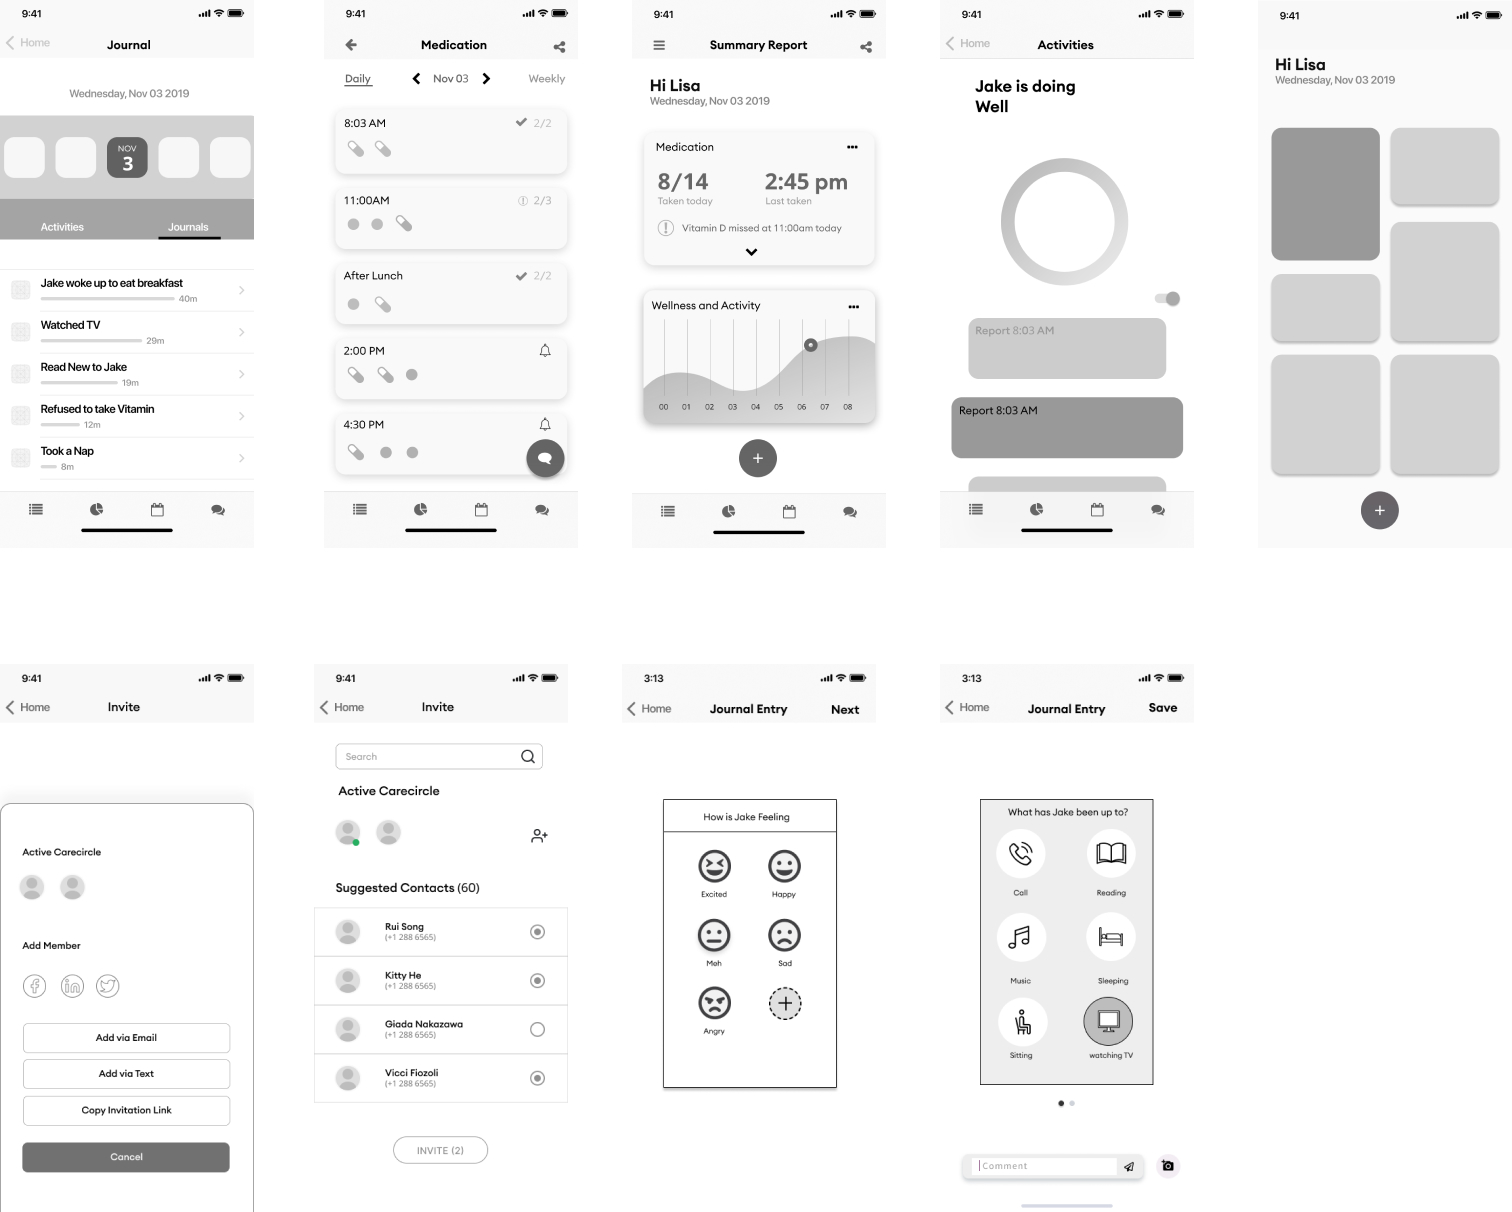 image-wireframe